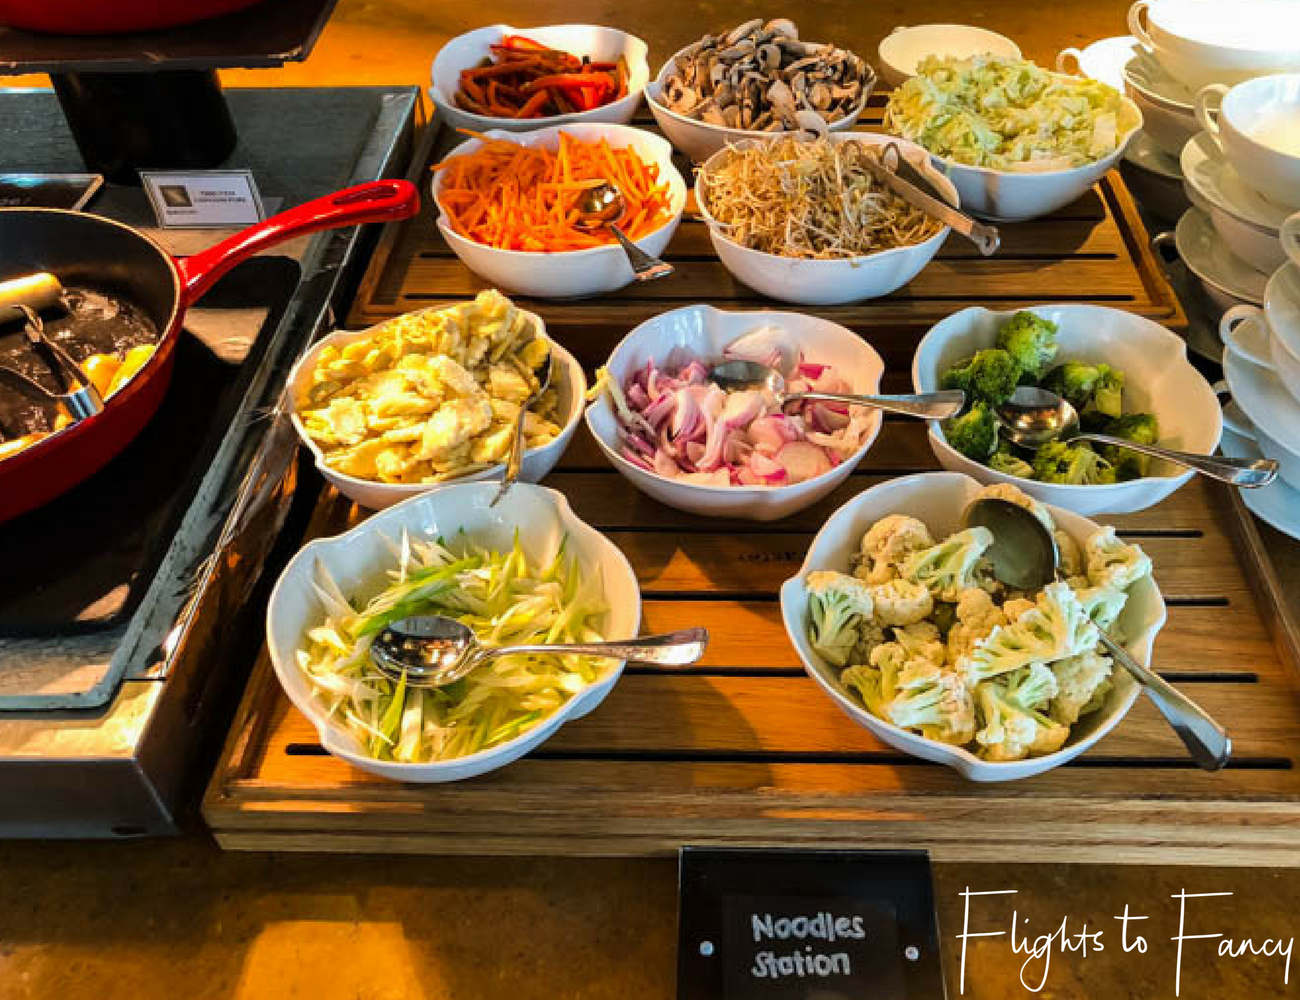 Flights To Fancy @ Raffles Makati Manila - Noodles for breakfast? Why not!